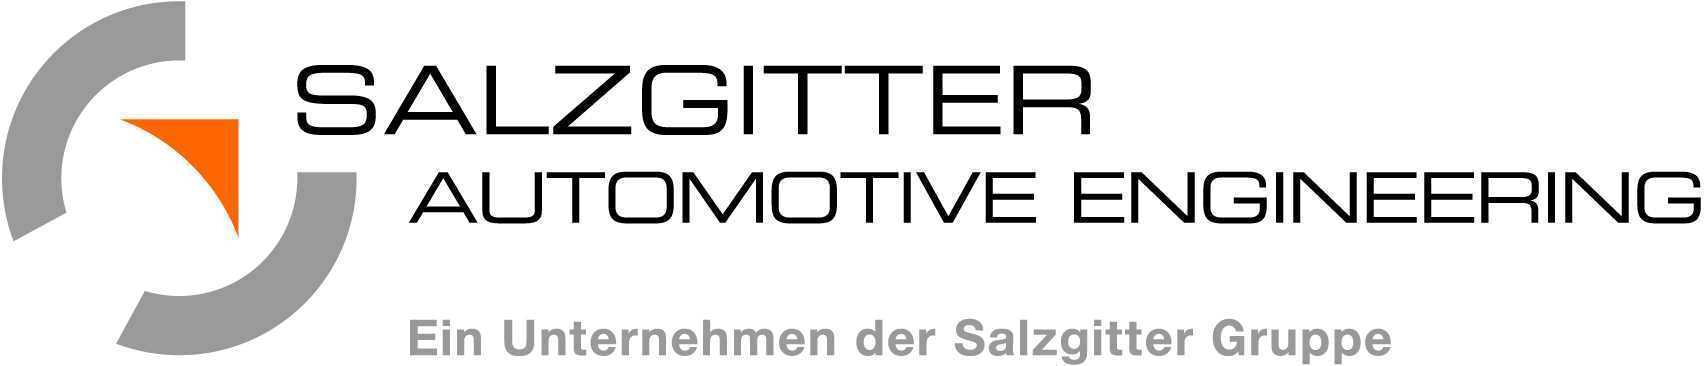 Salzgitter Automotive Engineering